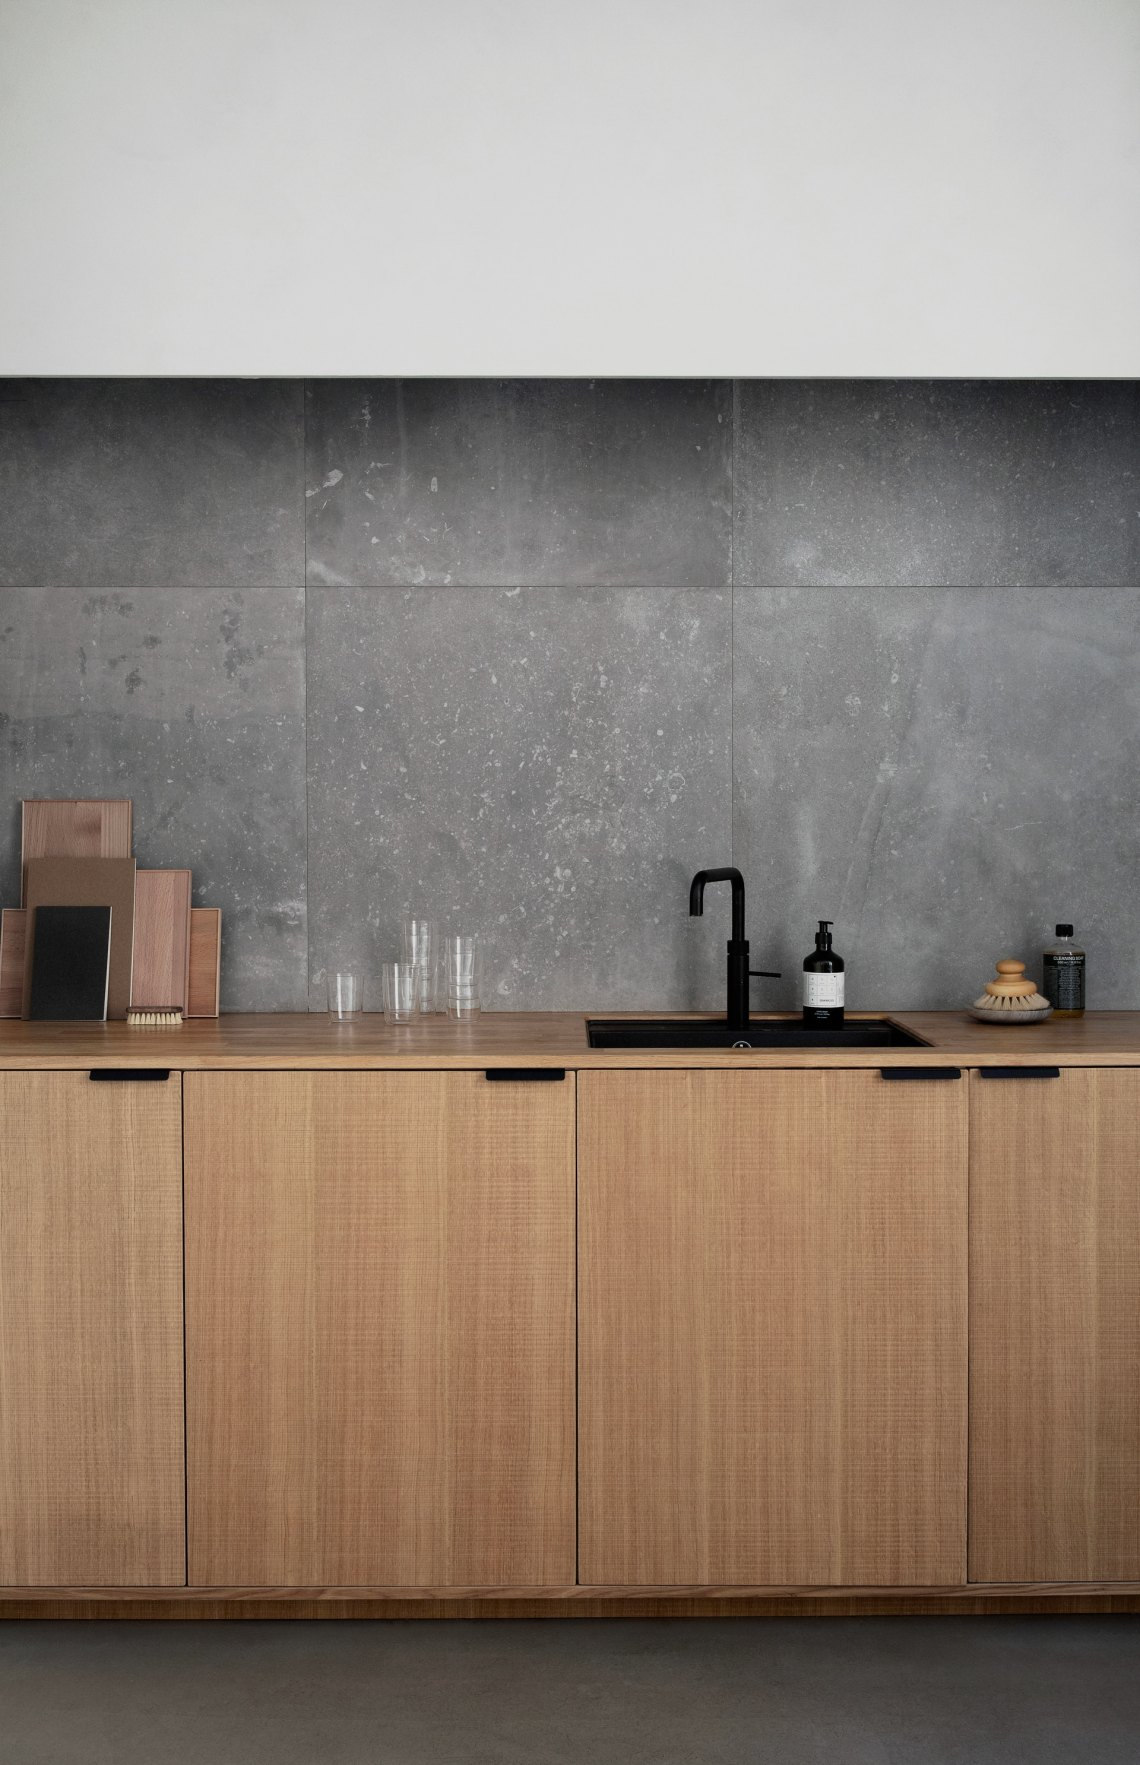 Reform kitchen in Norm Architects' Studio